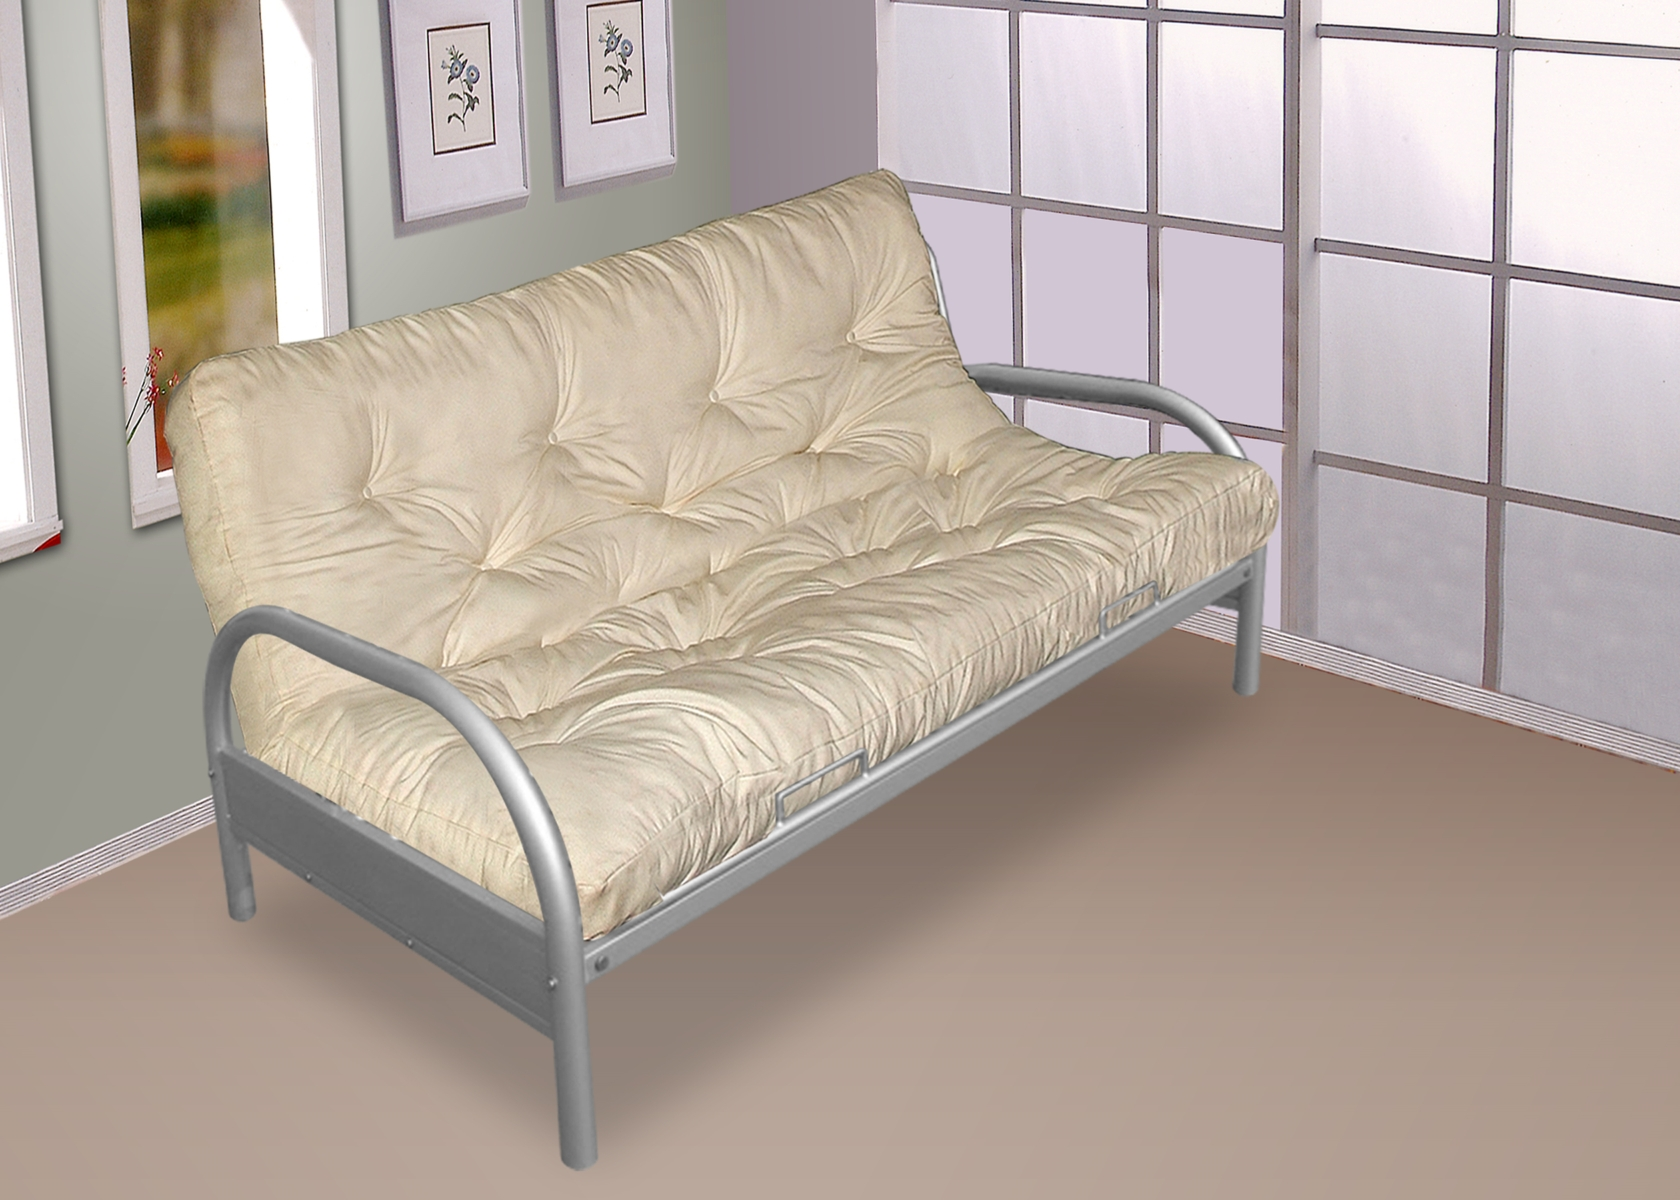 3 Seater Futon Bed